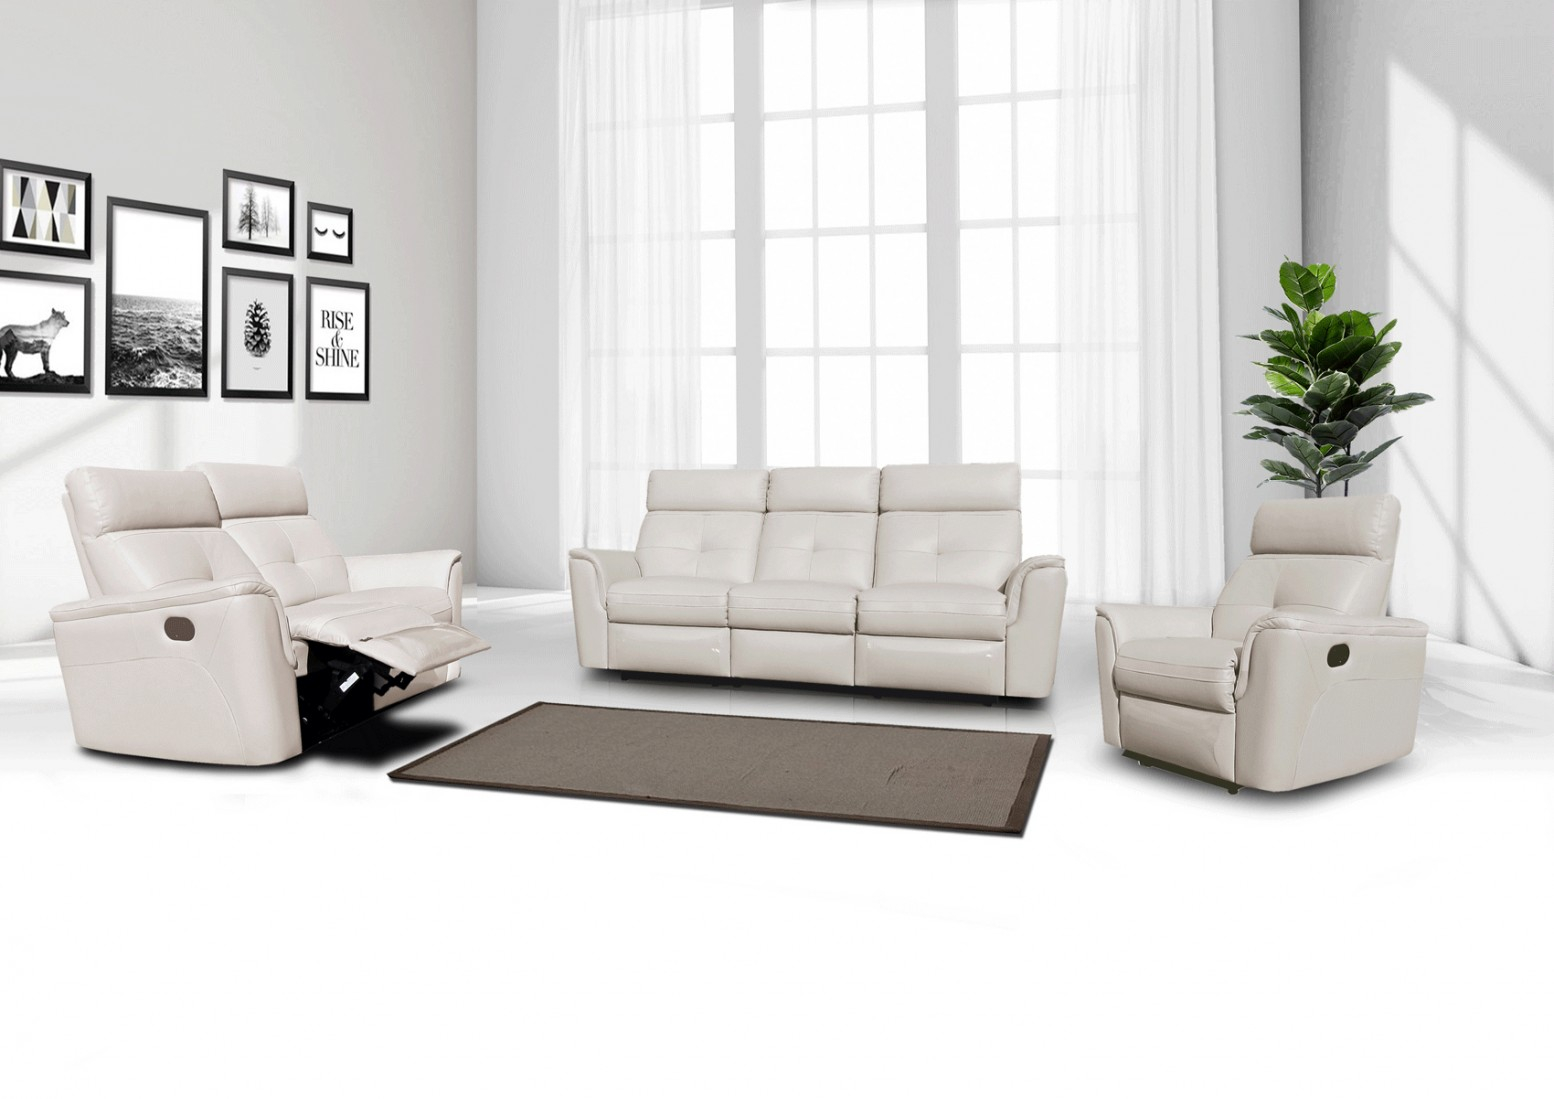 8501 Leathereco Leather Living Room Set Wrecliner pertaining to White Leather Living Room Sets